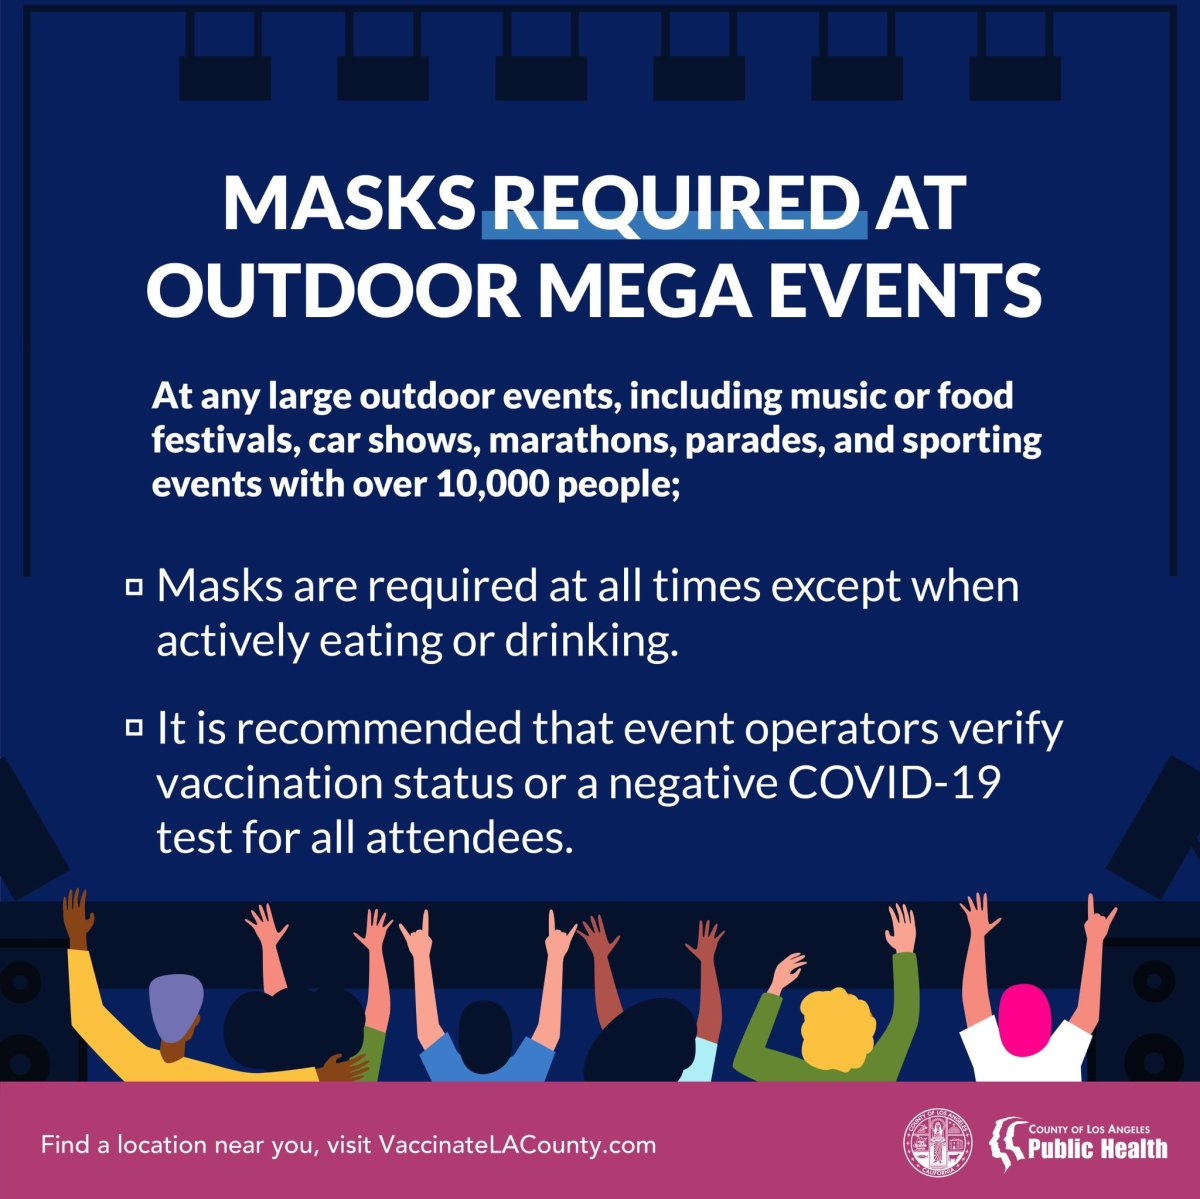 Los Angeles County will now require masks at any large outdoor event with over 10,000 attendees.